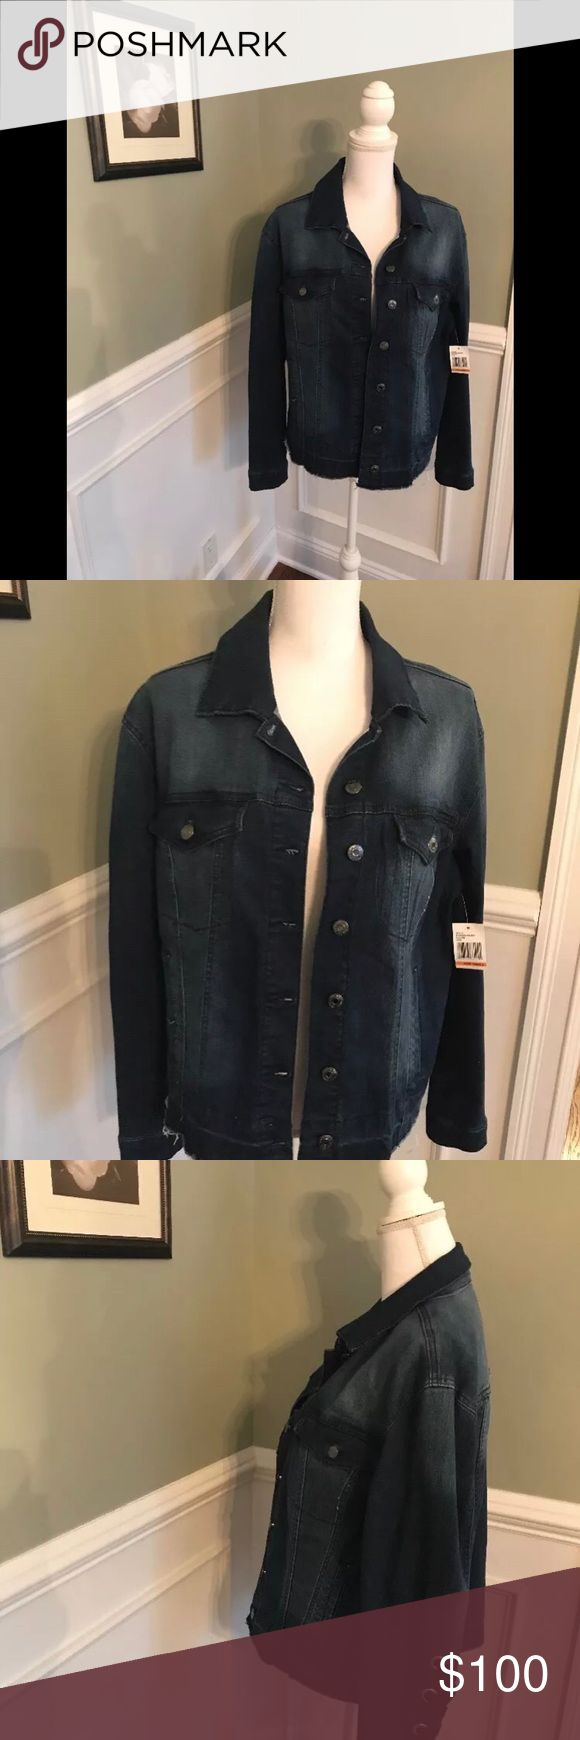 NEW Kensie Jeans Ribbon Sleeve Denim Jacket Size S NEW with tags Kensie Jeans Ribbon Sleeve Denim Jacket Size Small Unfinished hem at waist Ribbon detail on Sleeve Medium - dark Wash Kensie Jackets & Coats Jean Jackets